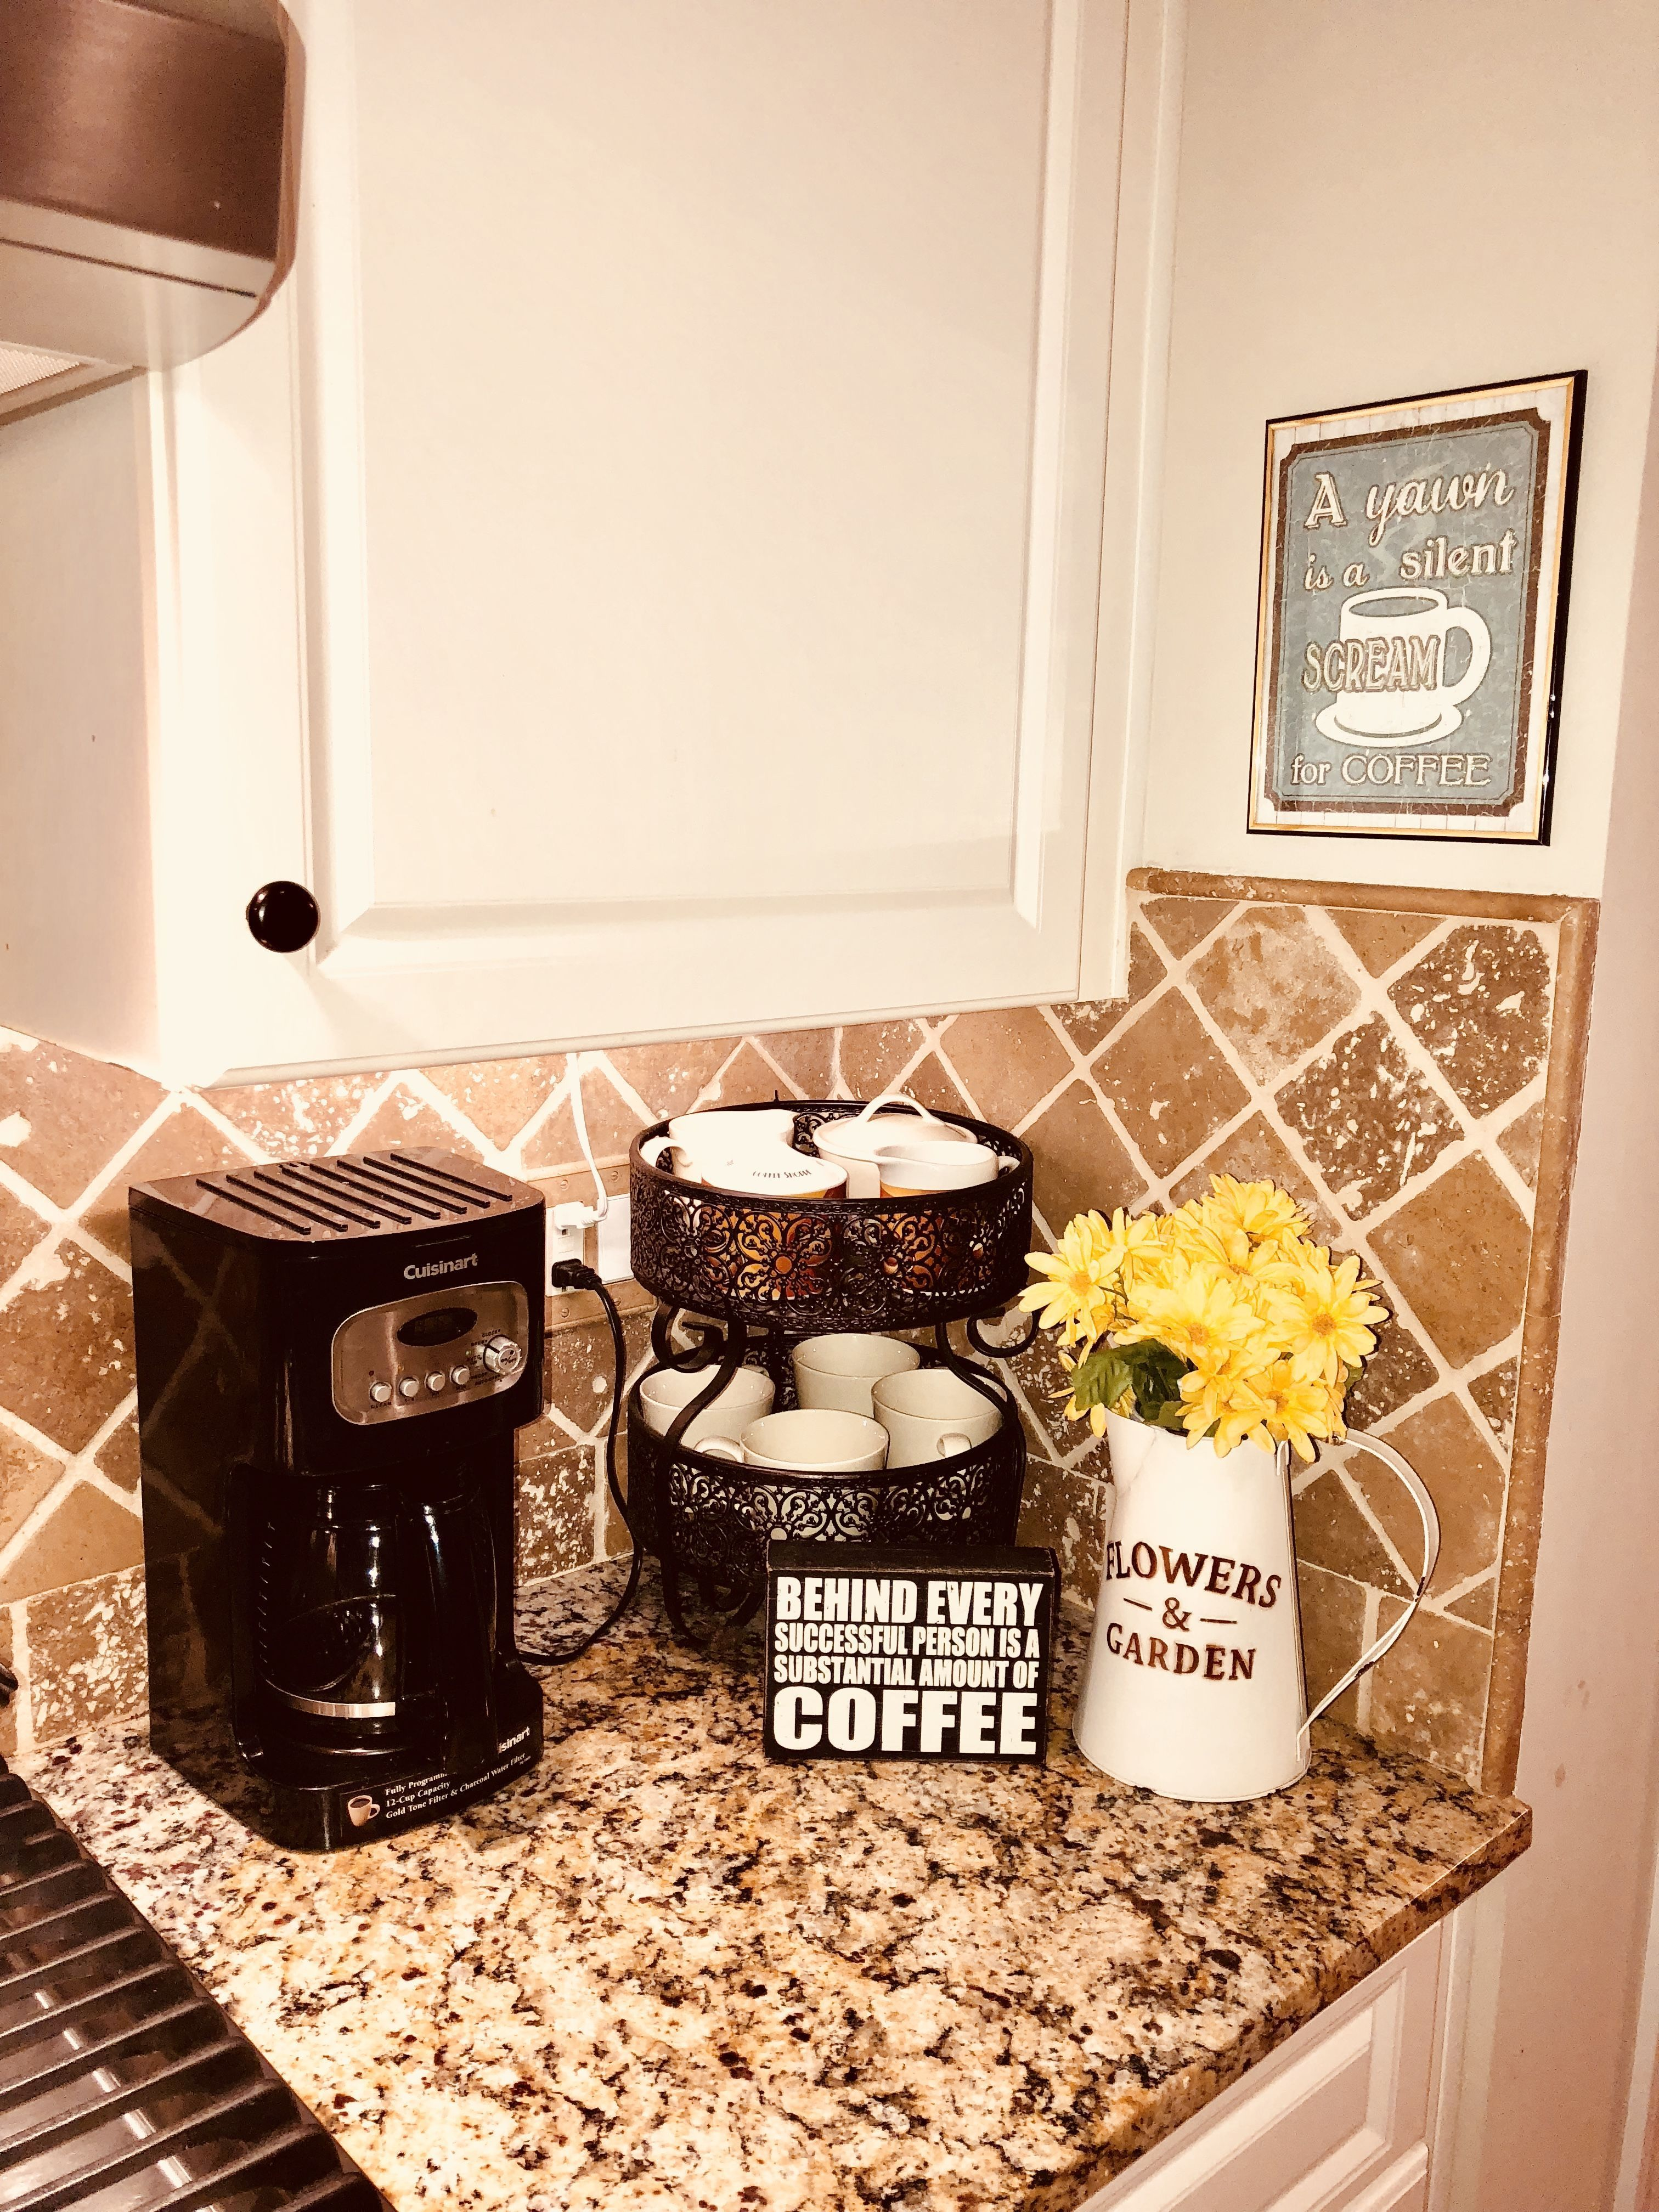 15 Exceptional Diy Coffee Bar Ideas For Your Cozy Home Futurian Diy Coffee Bar Coffee Bars In Kitchen Coffee Bar Home